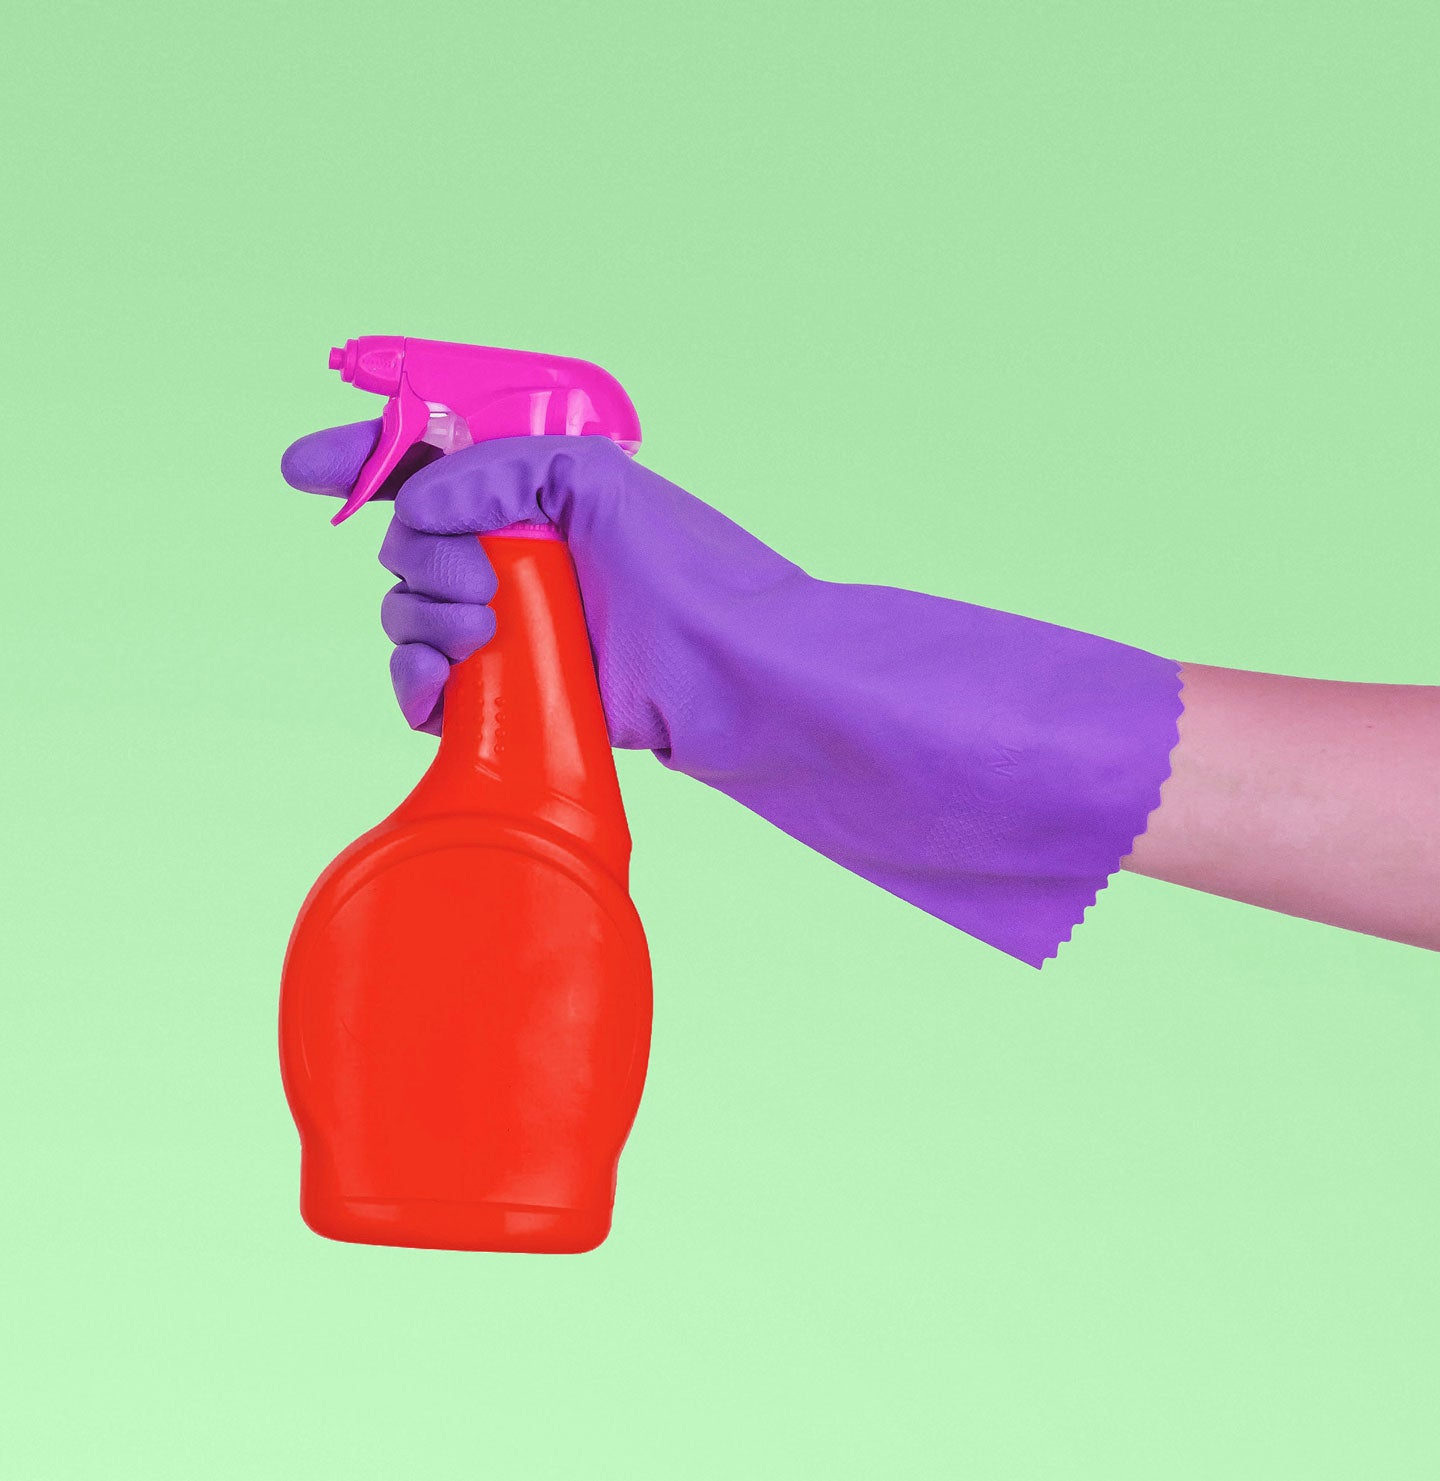 Cleaning product spray bottle